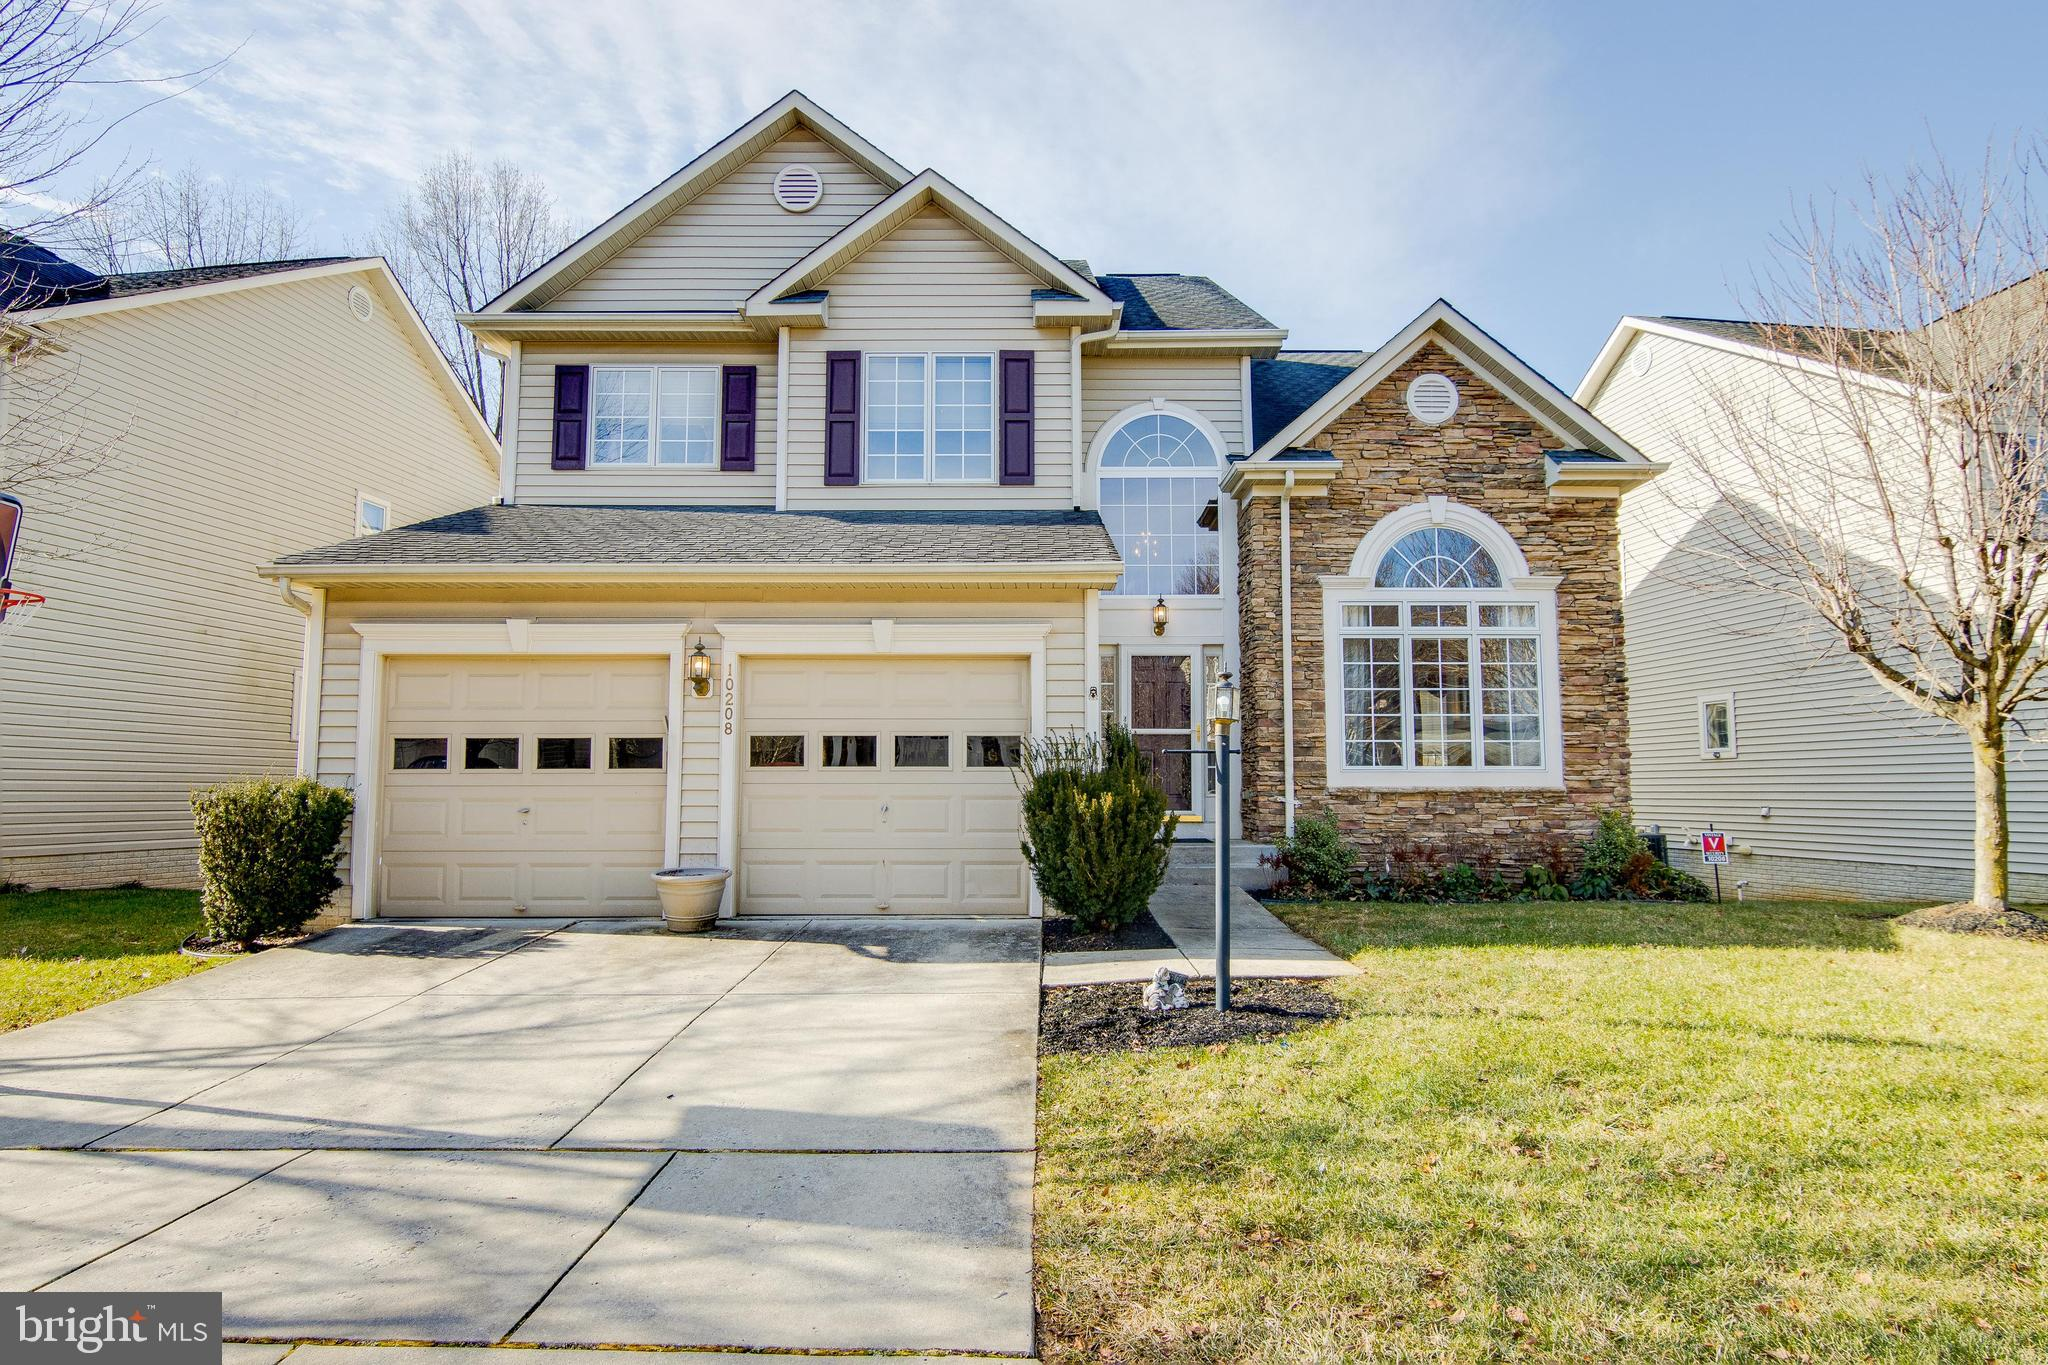 Gorgeous 5 bedroom home with tons of upgrades and backs up to common space with oversized garage wit